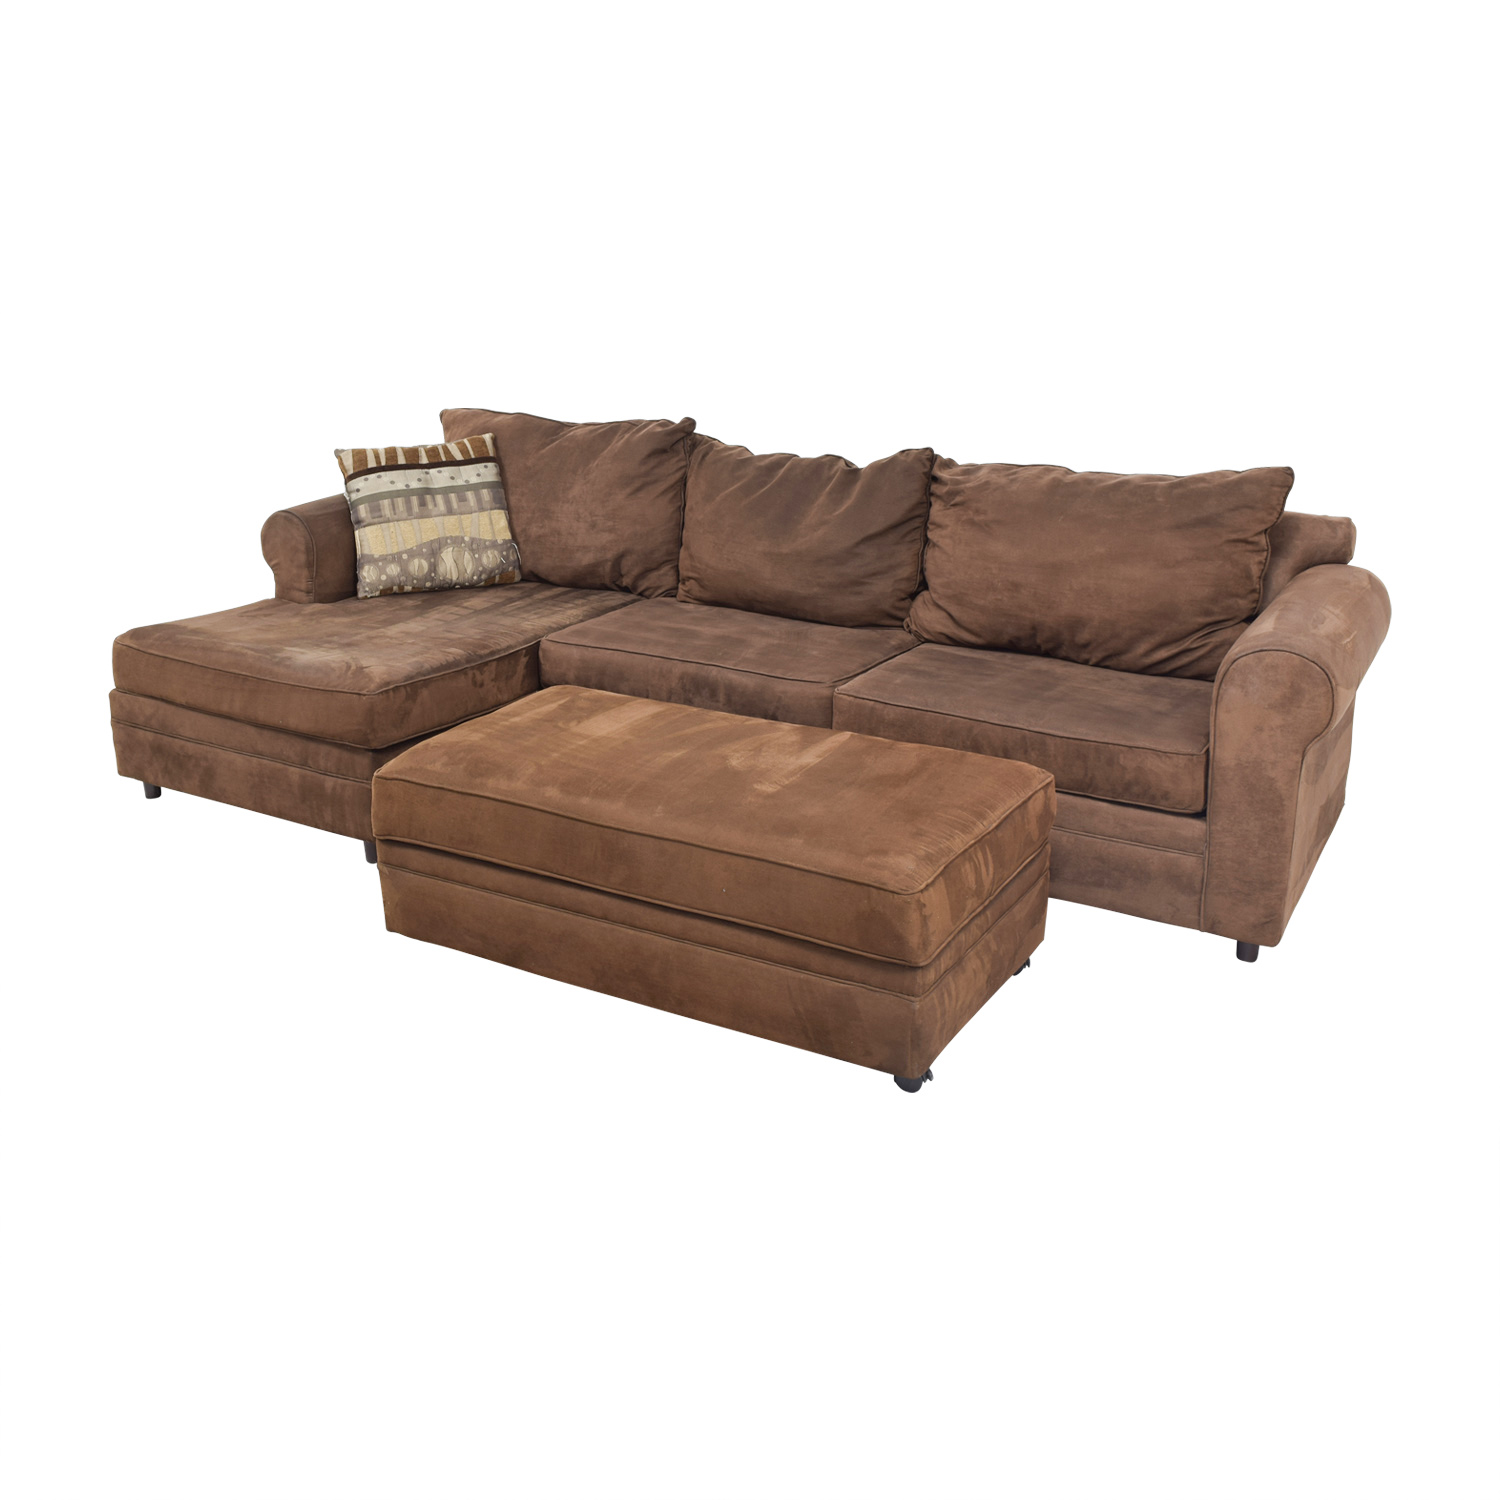 Furnishare second hand furniture marketplace nyc for Second hand sofas